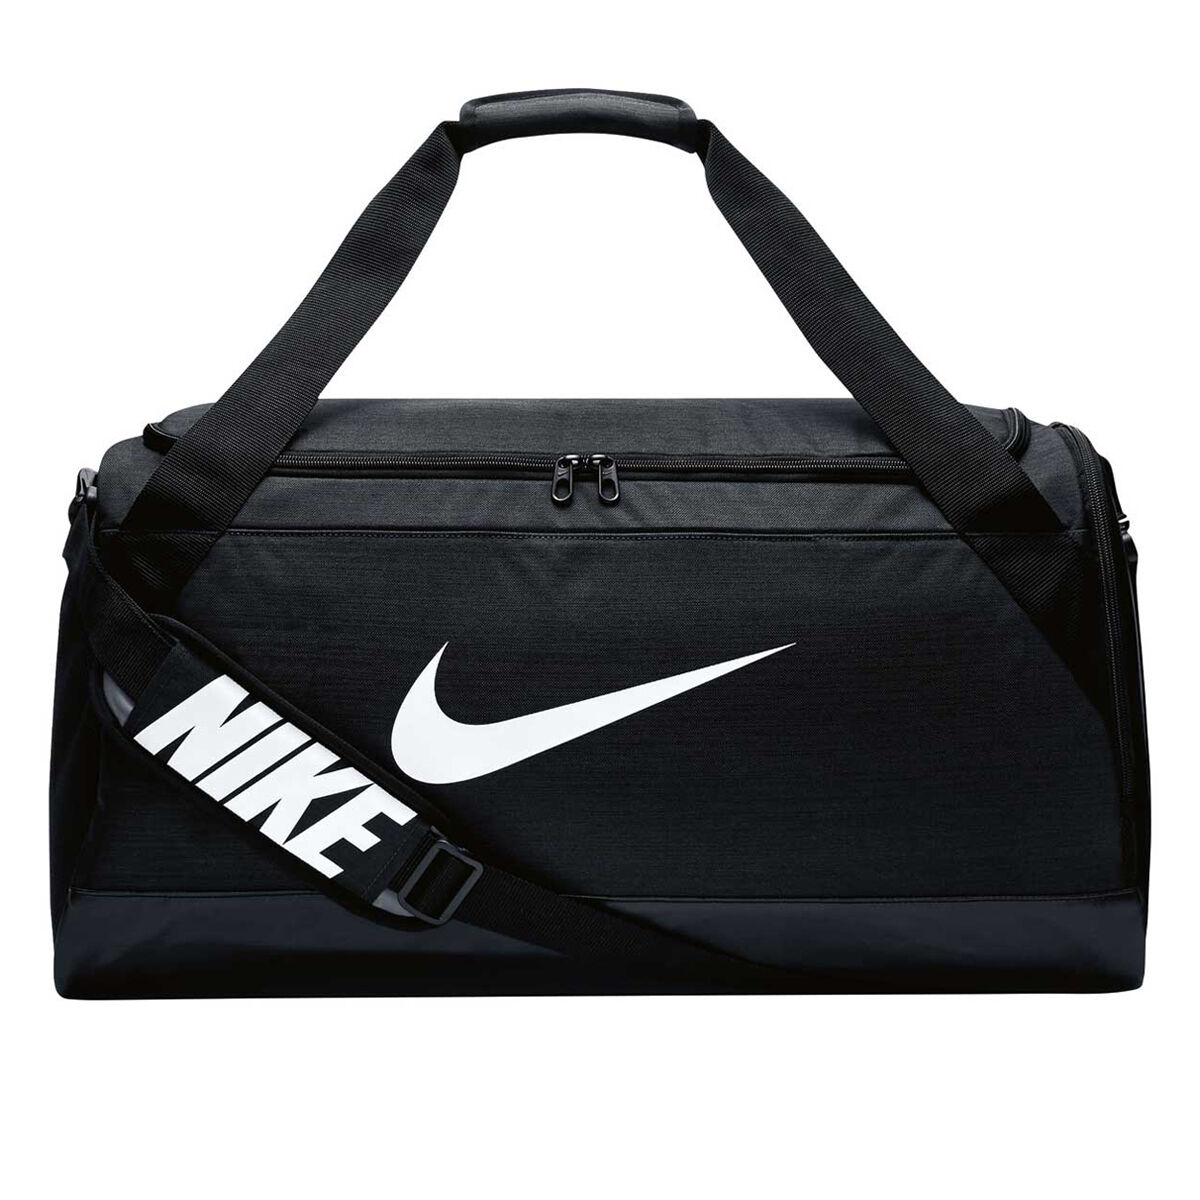 Details about Nike BLACK Duffle Bag Large HOLD 6 BASKETBALLS COACHES BAG EXCELLENT! FREE SHIP